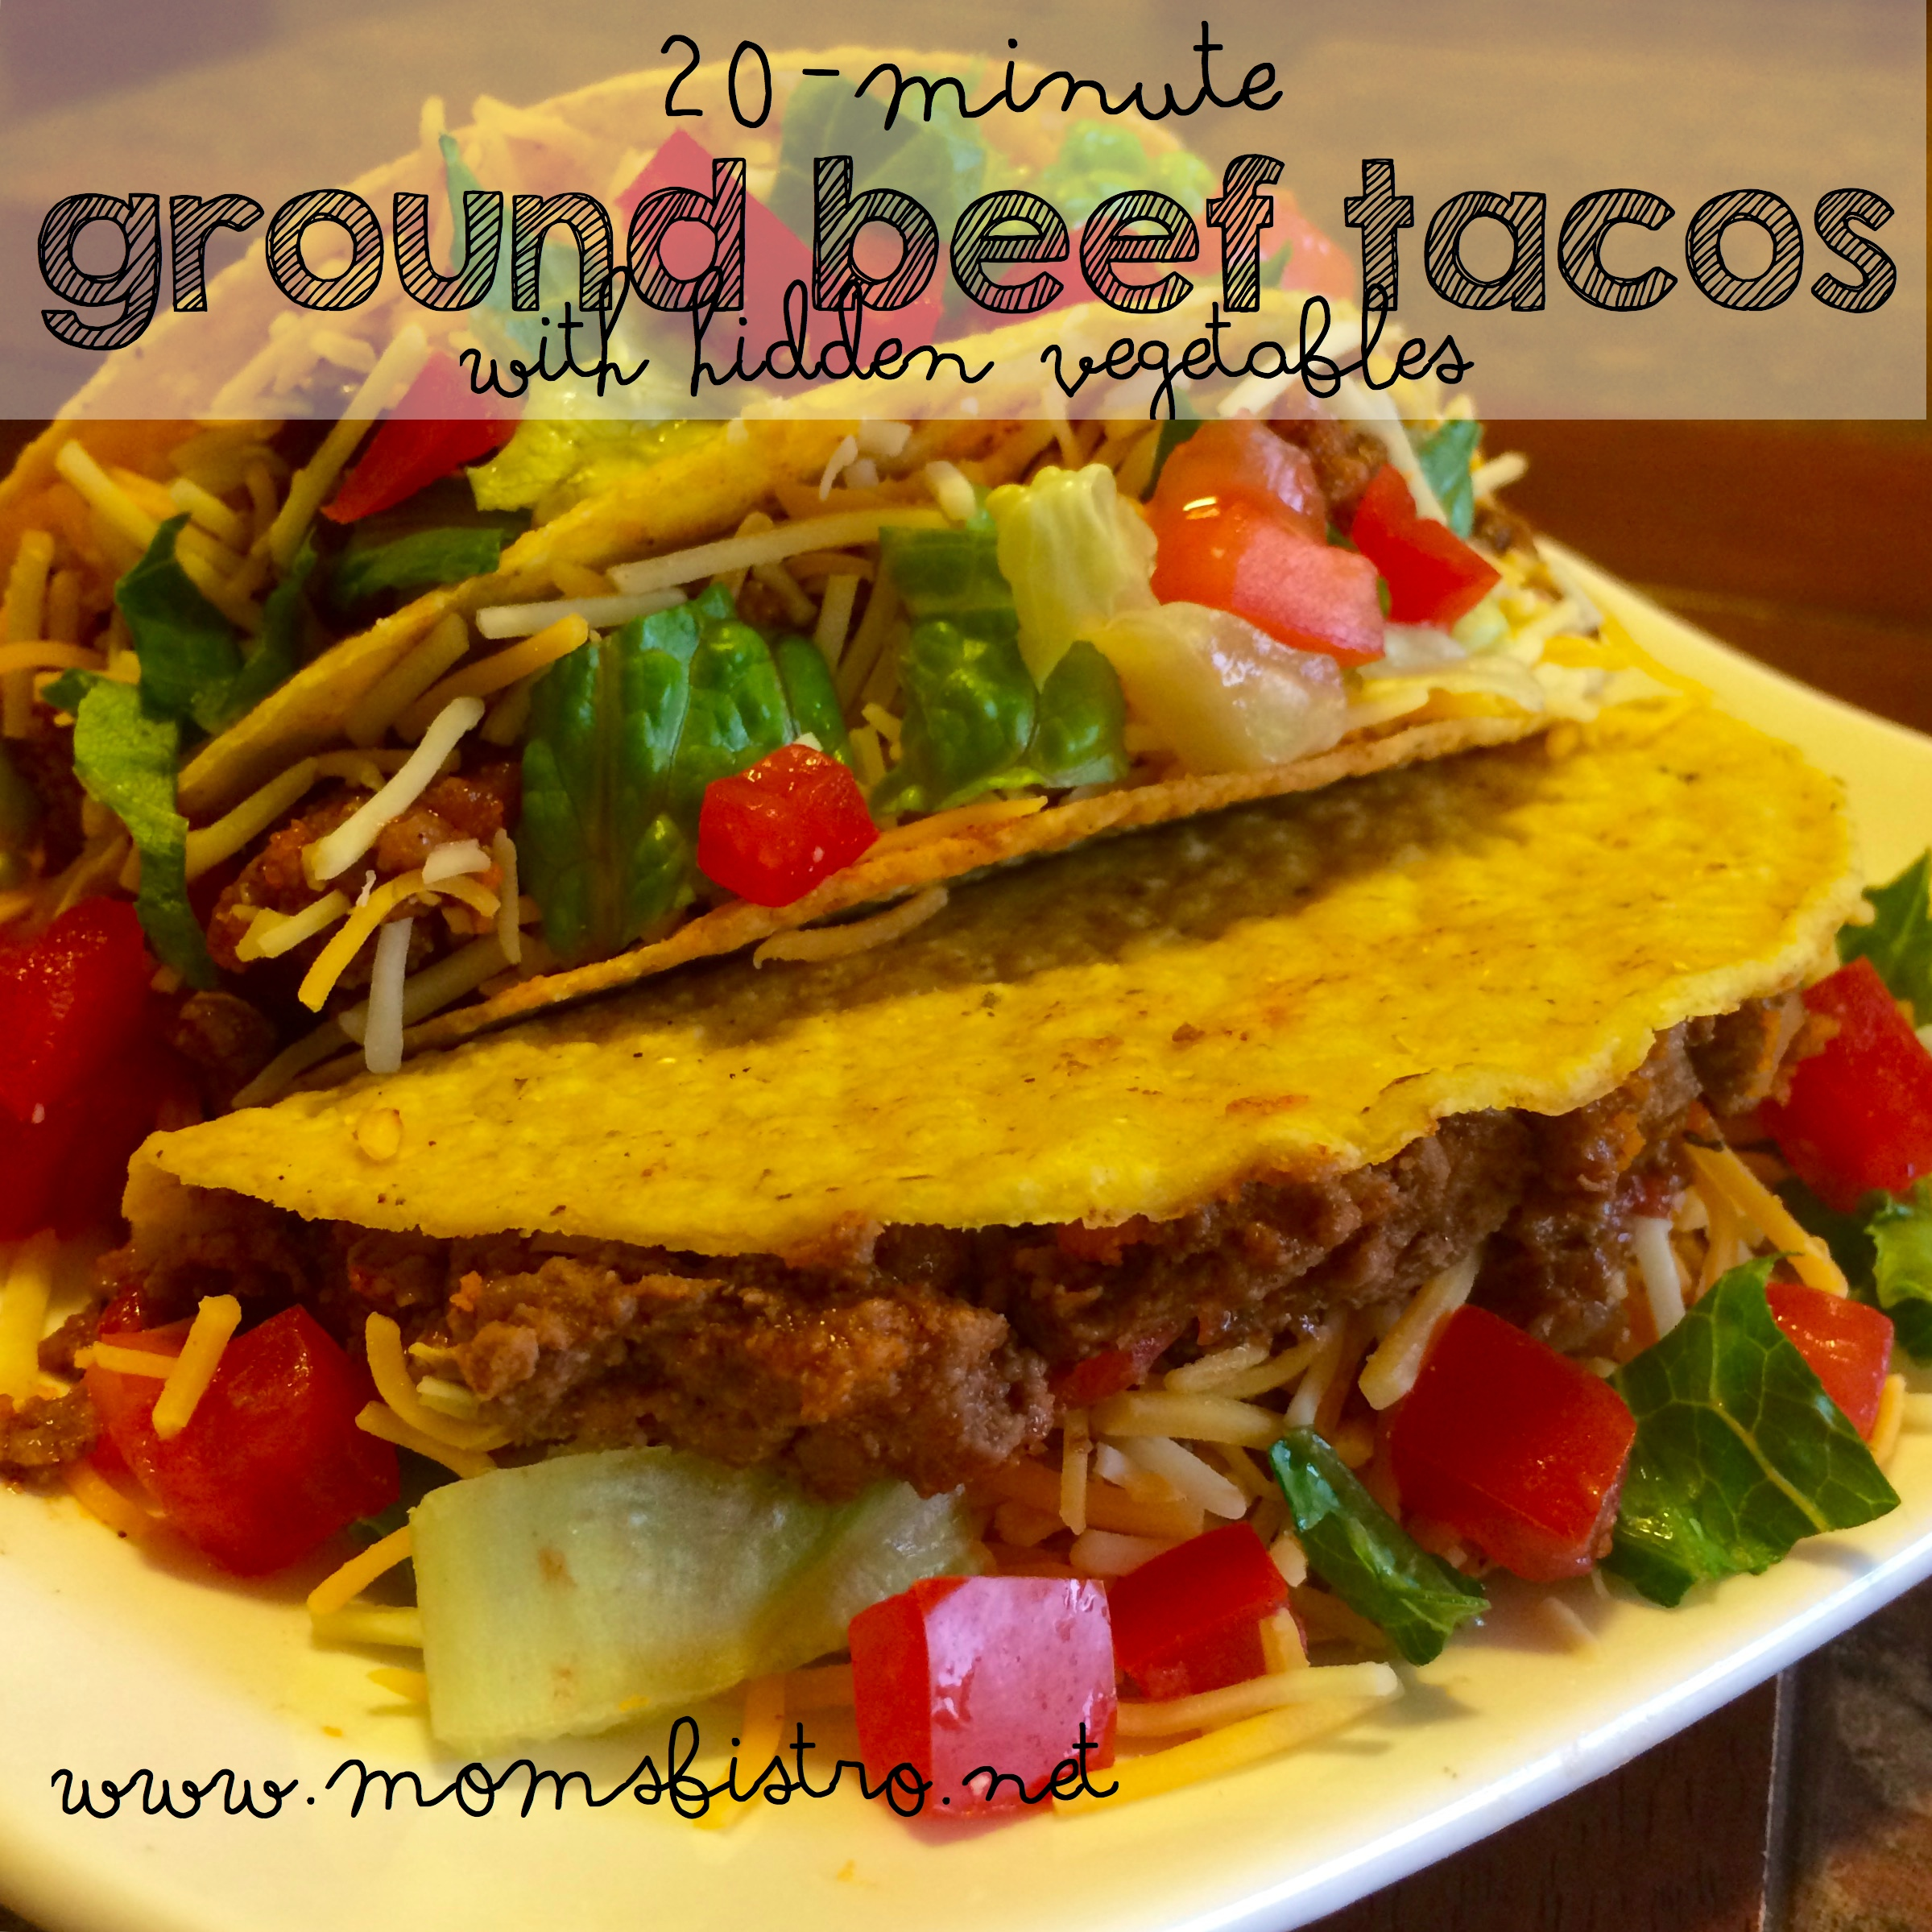 Make Taco Night A Success With These Easy 20-Minute Ground Beef Tacos | 20-Minute Tacos with Hidden Vegetables Recipe